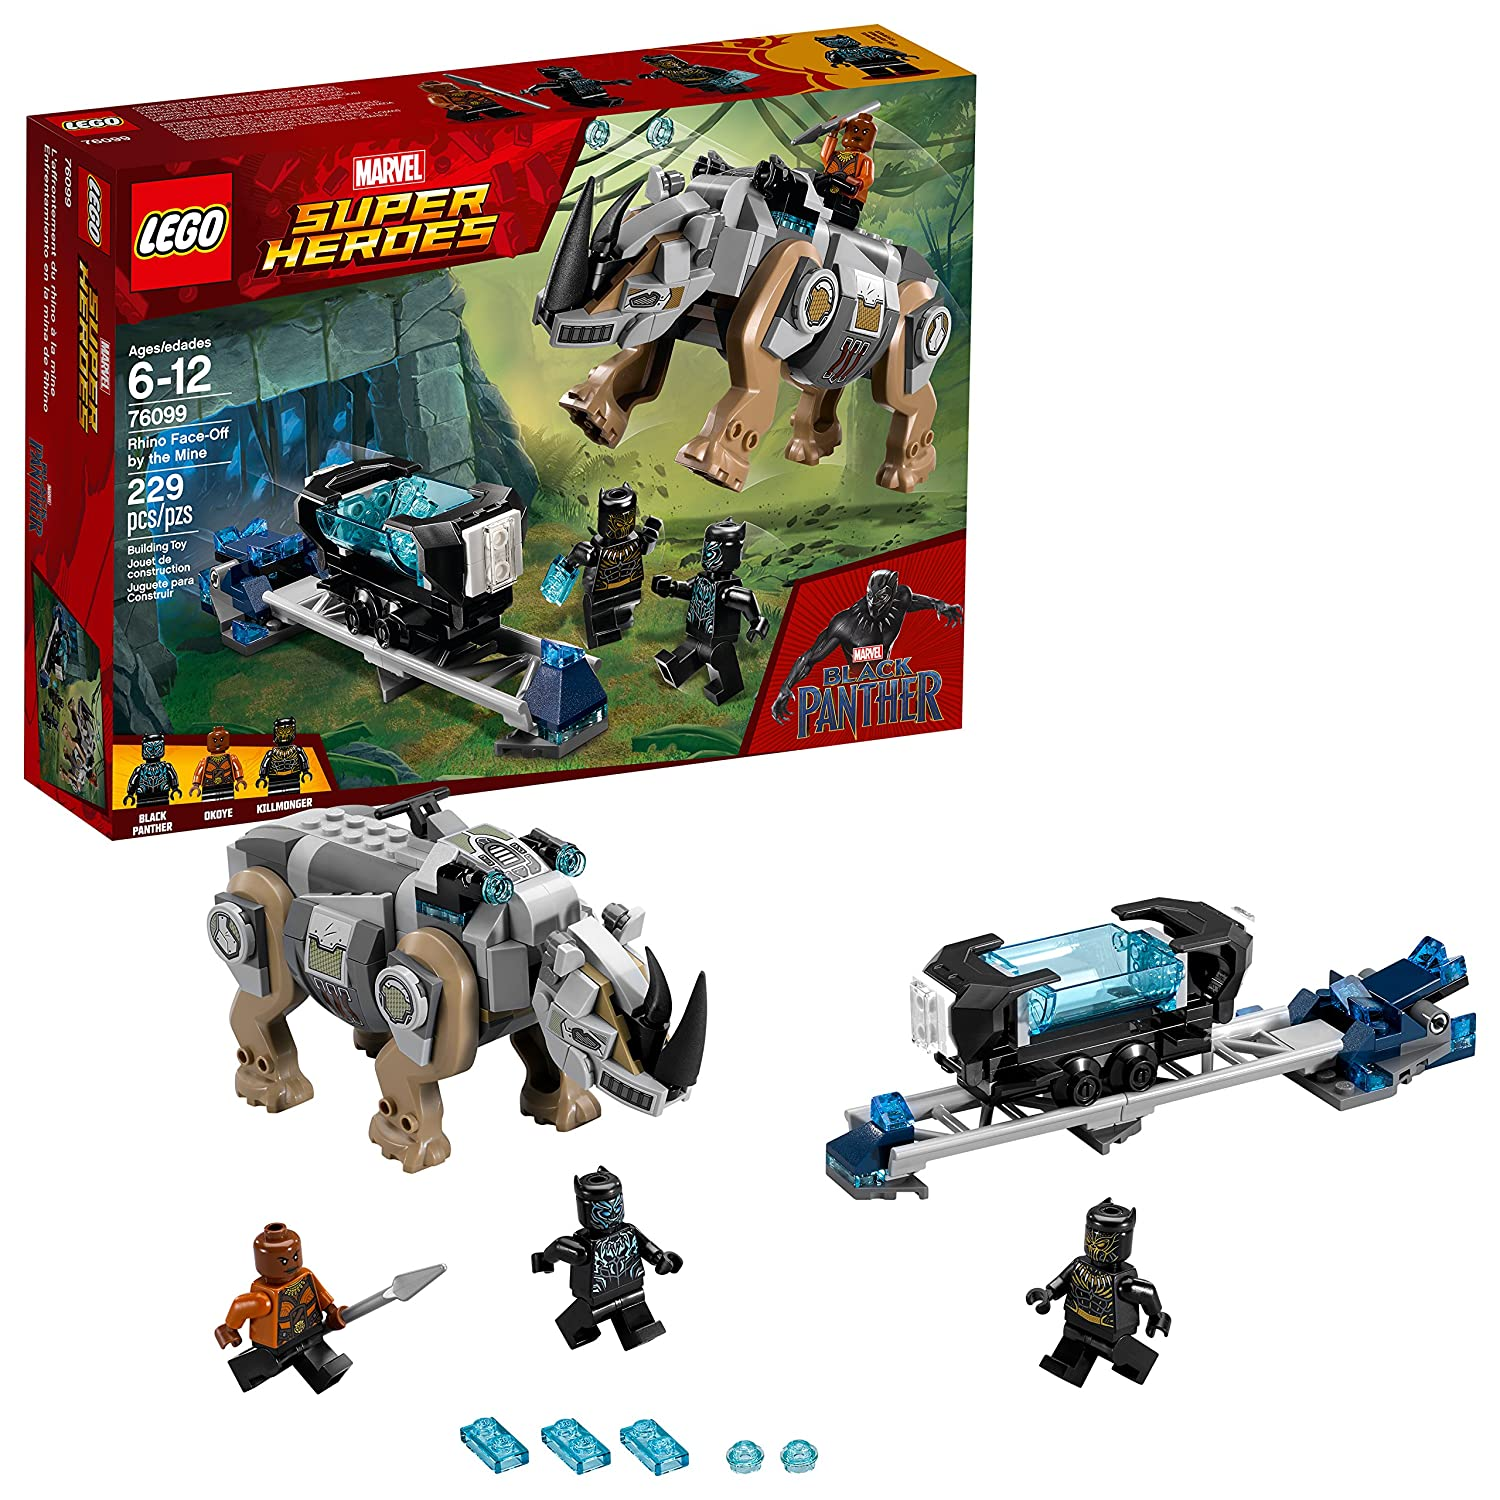 LEGO Marvel Super Heroes Rhino Face-Off by the Mine 76099 Building Kit (229 Piece) 6212658